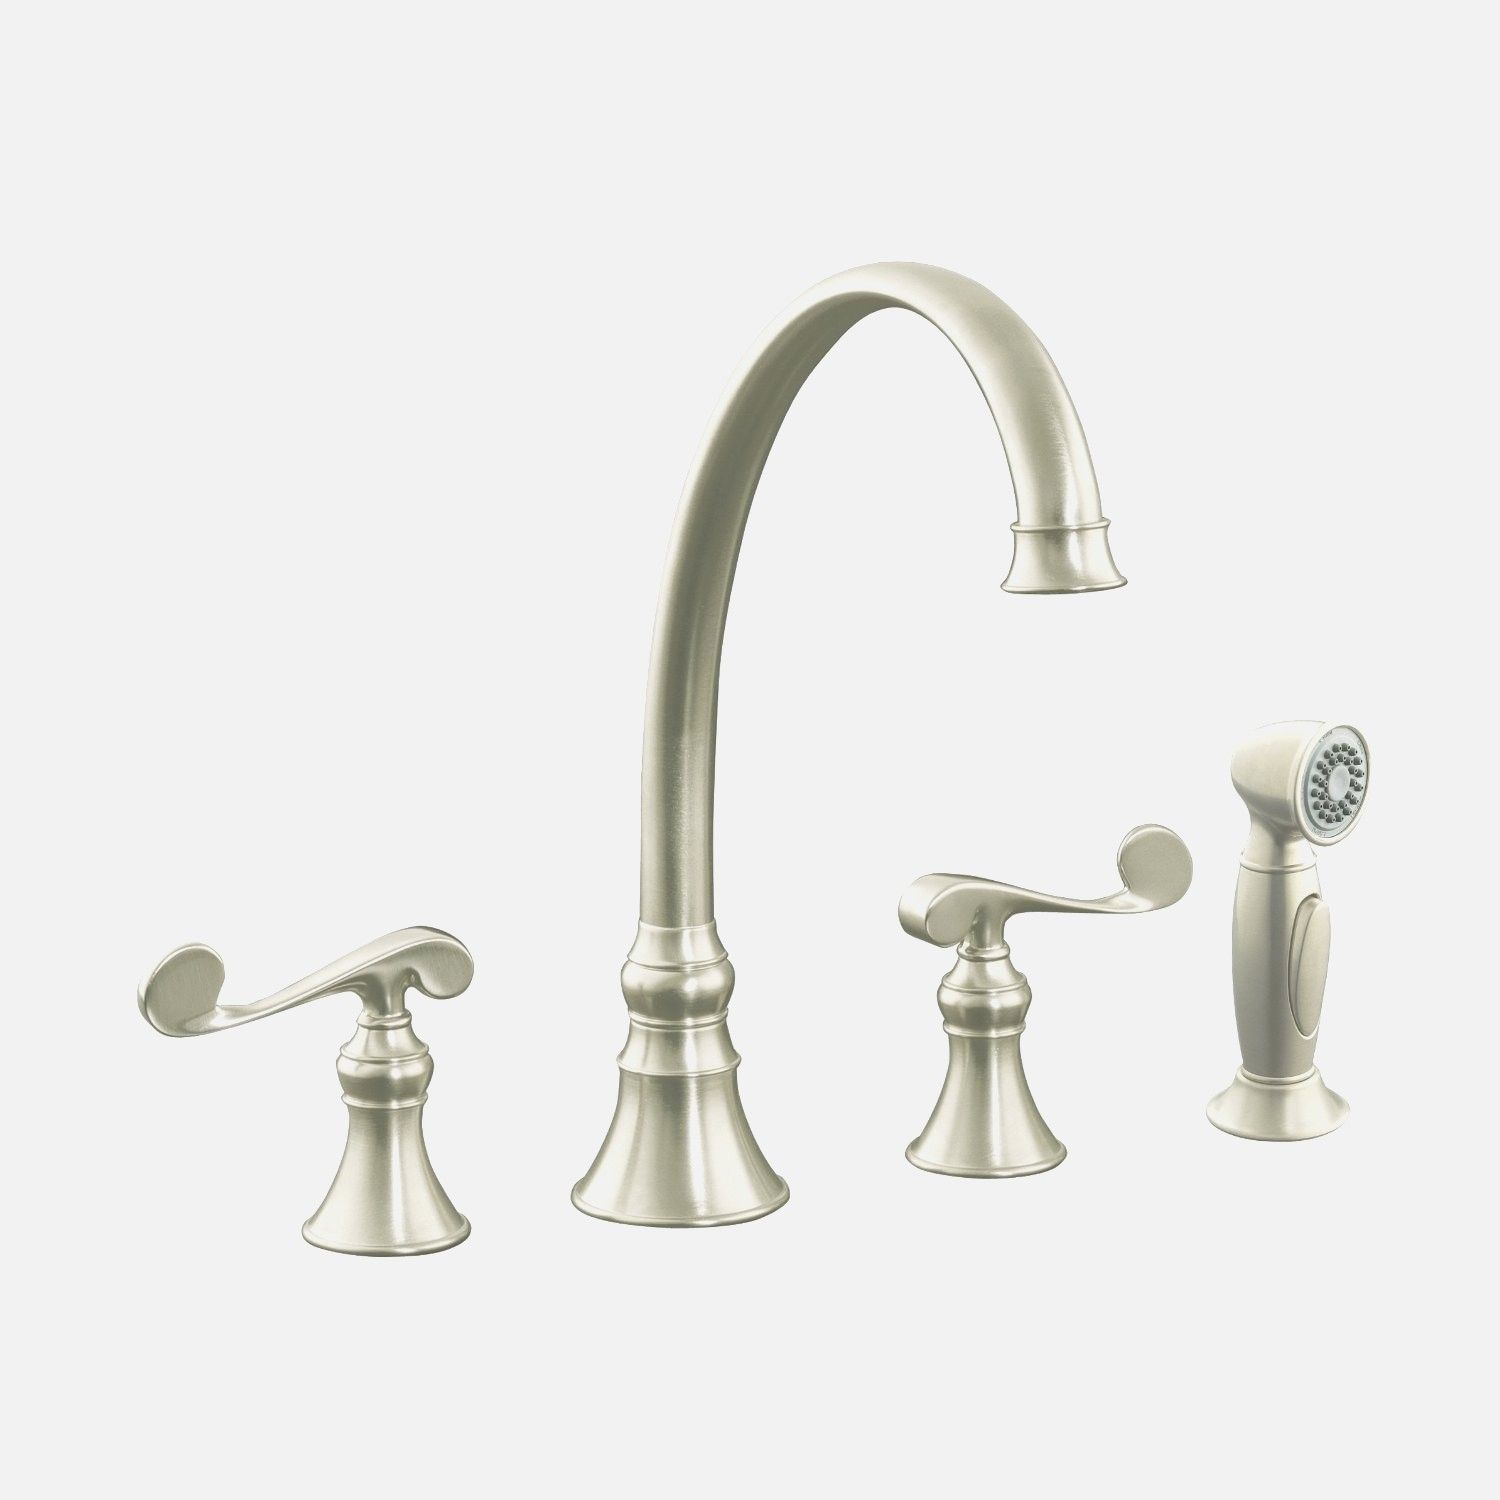 home depot delta kitchen faucets home depot kitchen faucet hose home depot kitchen faucet - Kitchen Faucet Home Depot